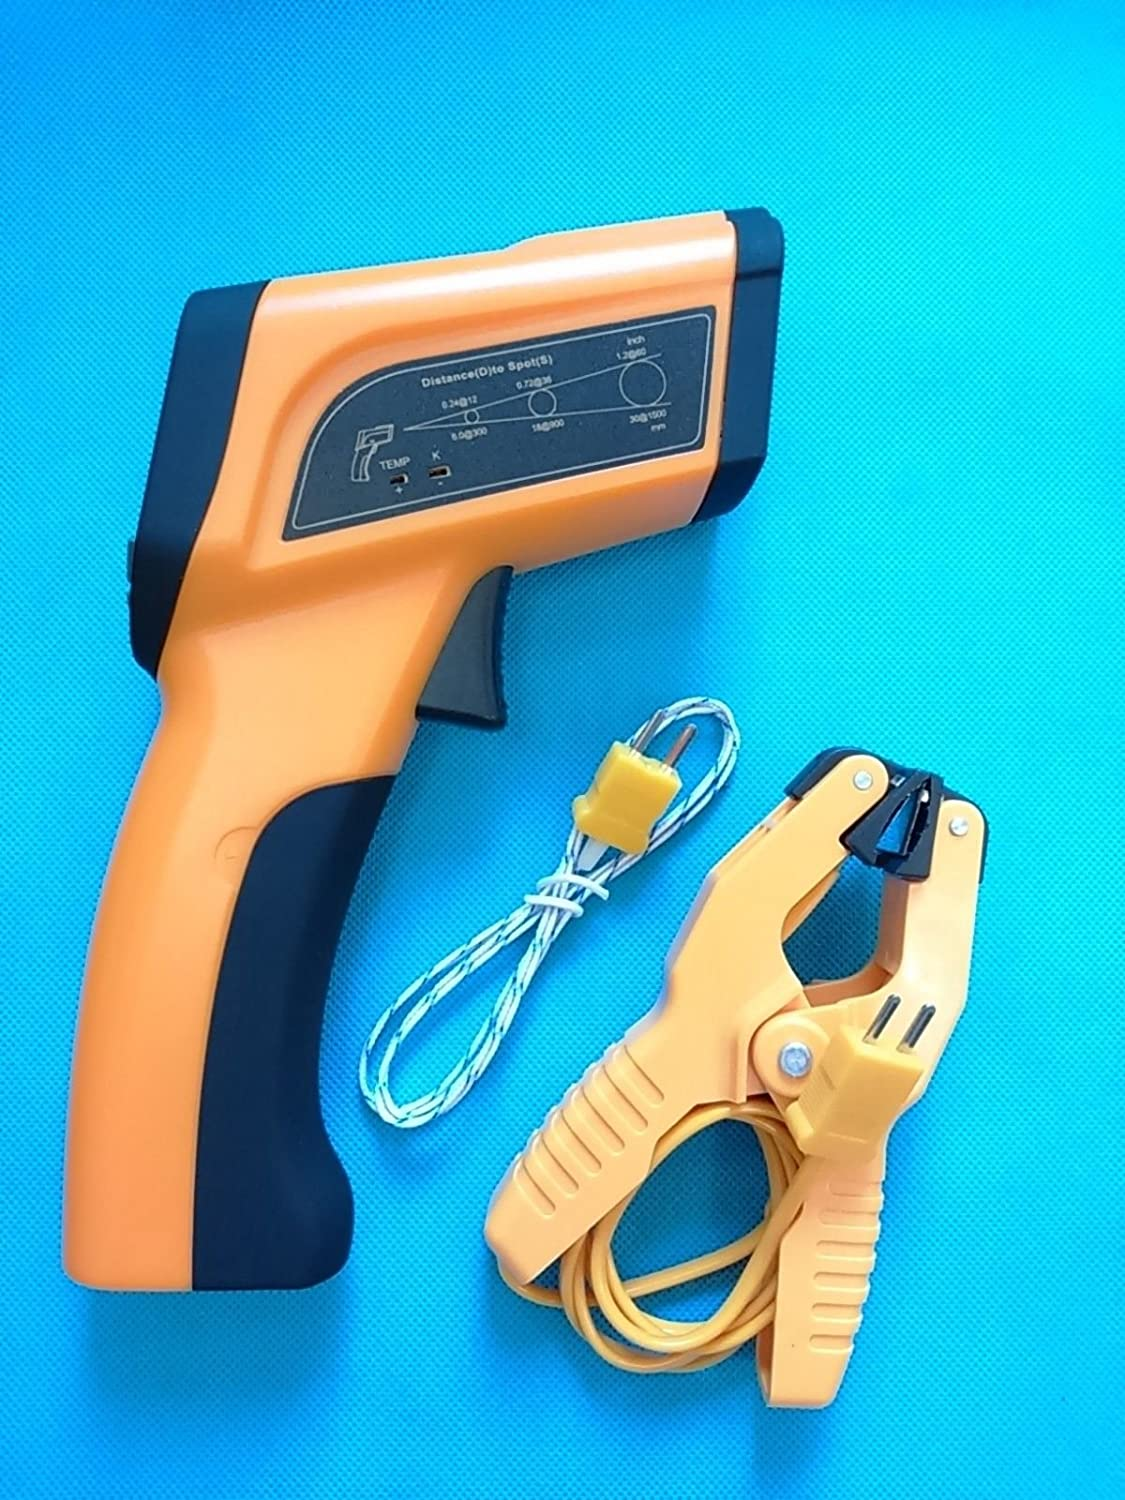 50~3992/°F Infrared Laser Thermometer w//K-Type Clamp PerfectPrime TM6899 High Temperature